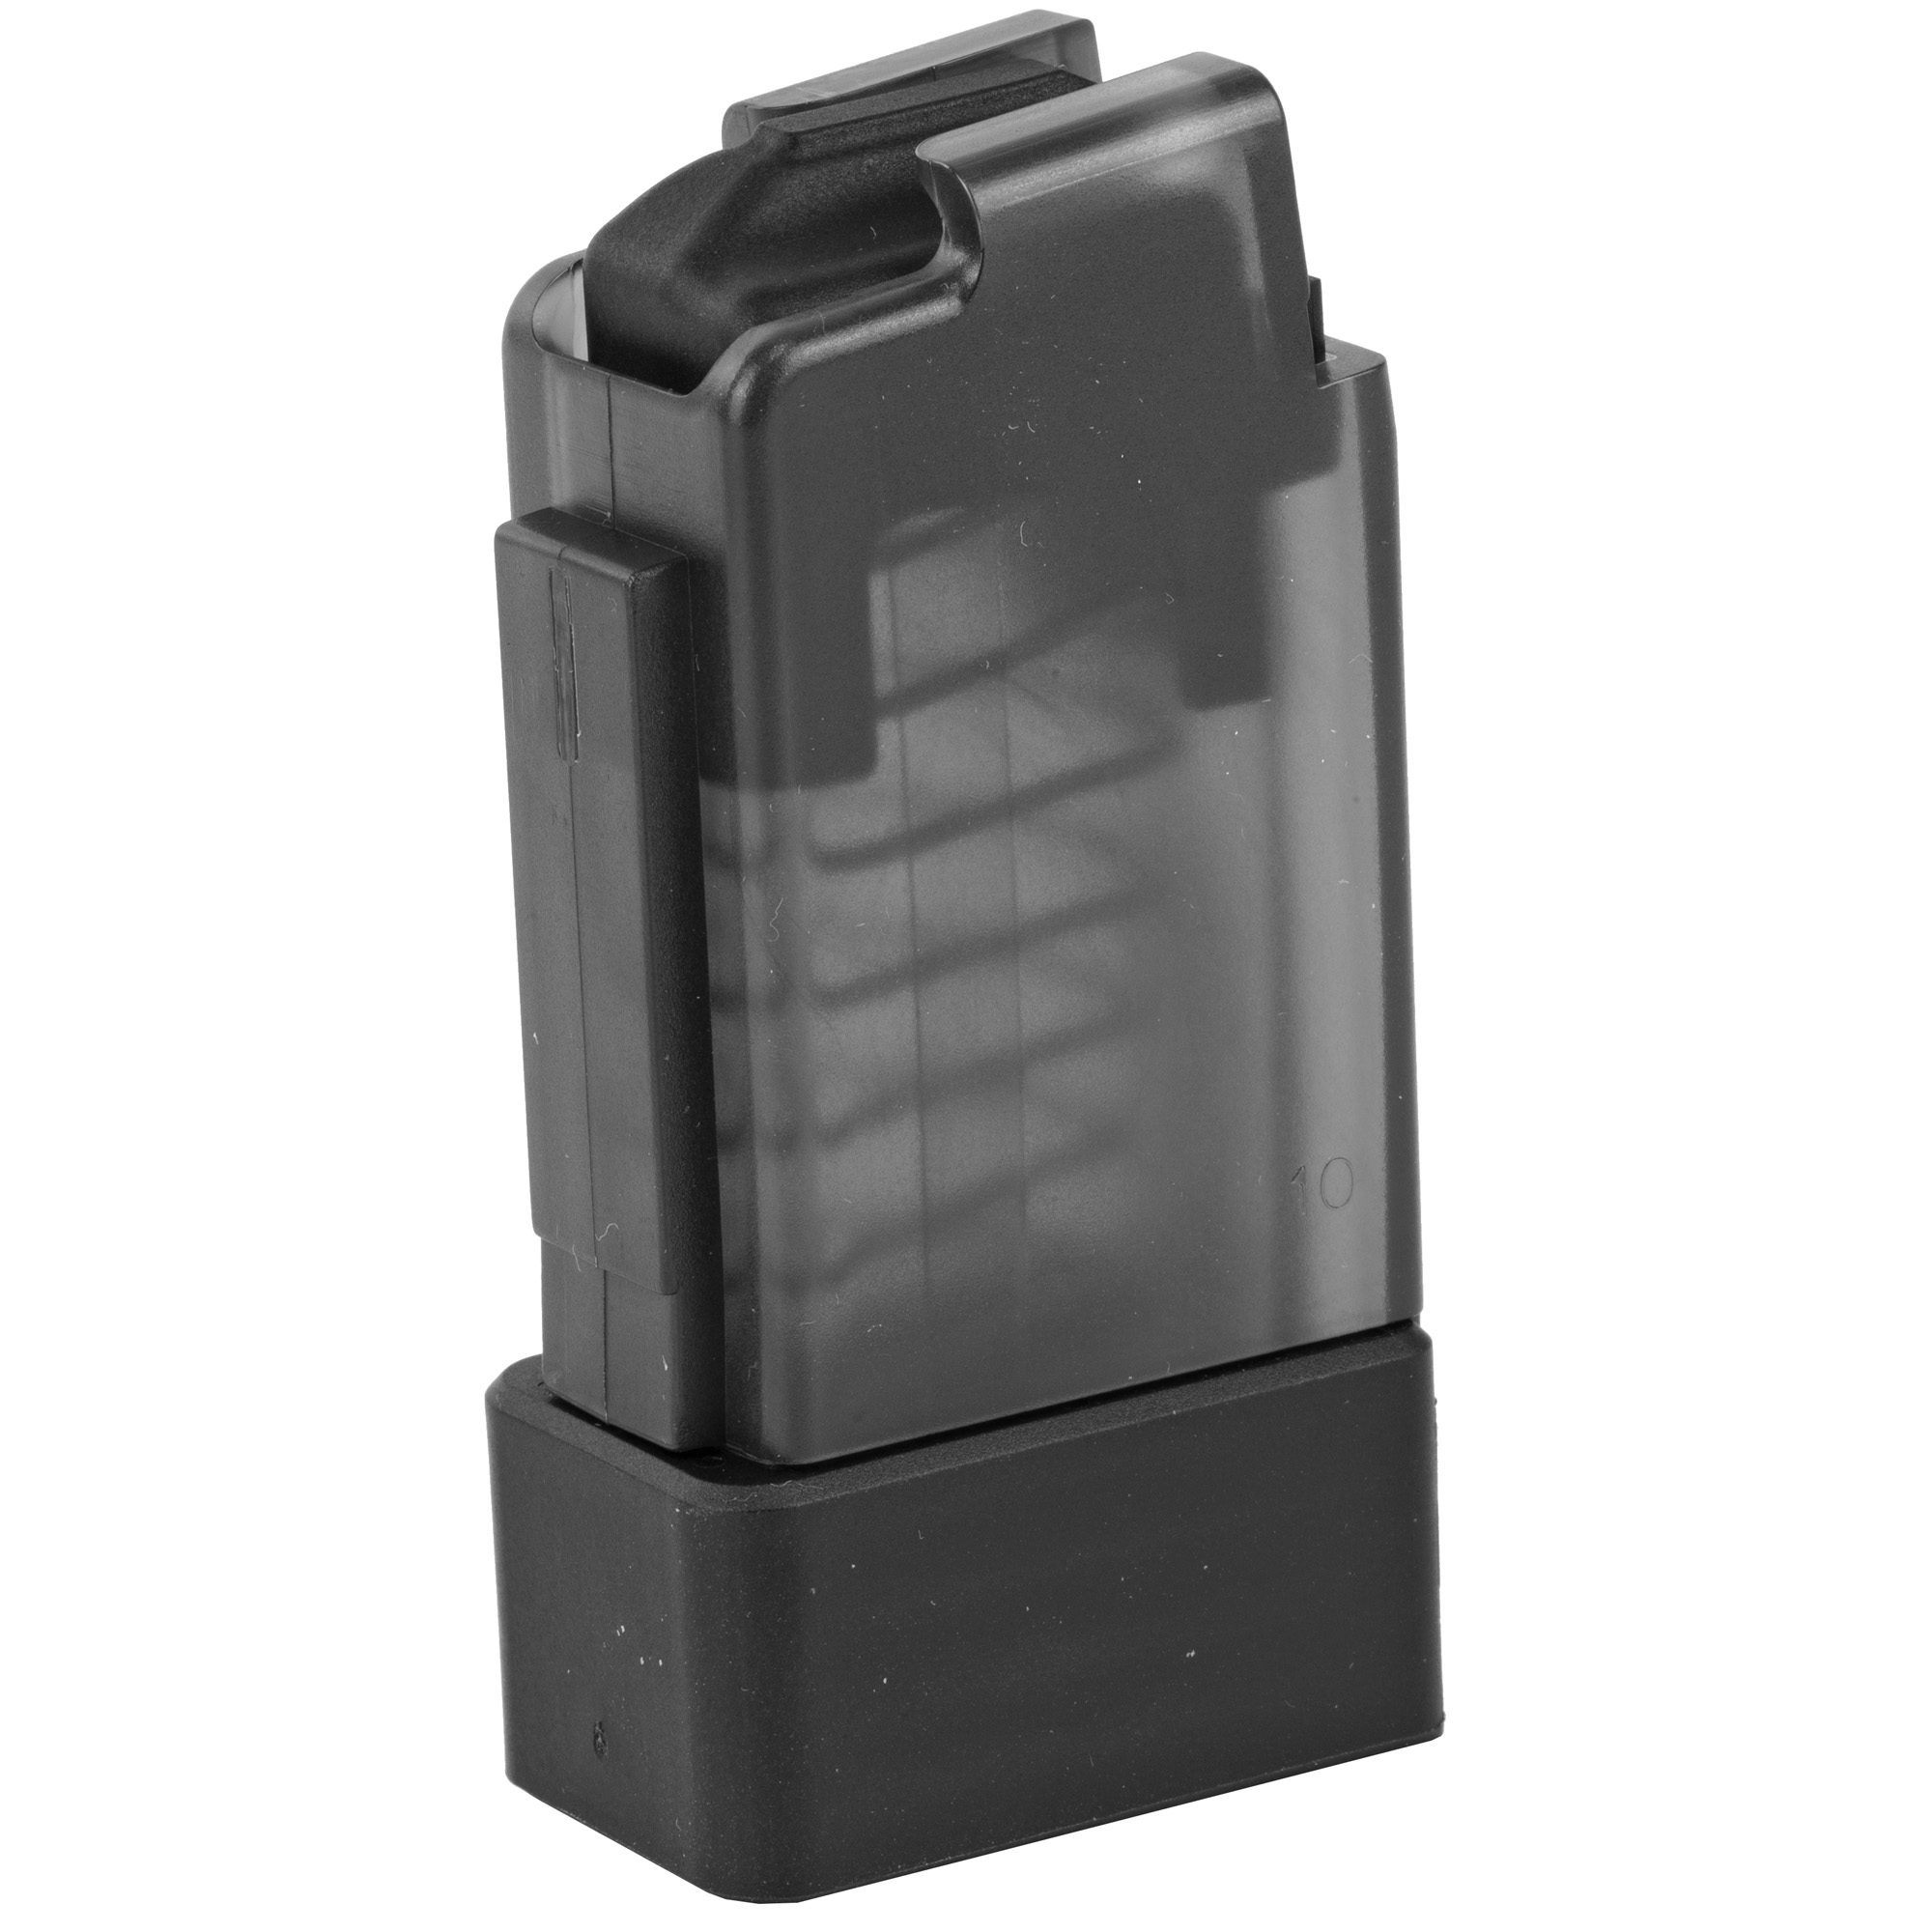 This CZ factory OEM magazine features translucent polymer construction and is designed for reliable operation in the CZ Scorpion EVO 3 S1.